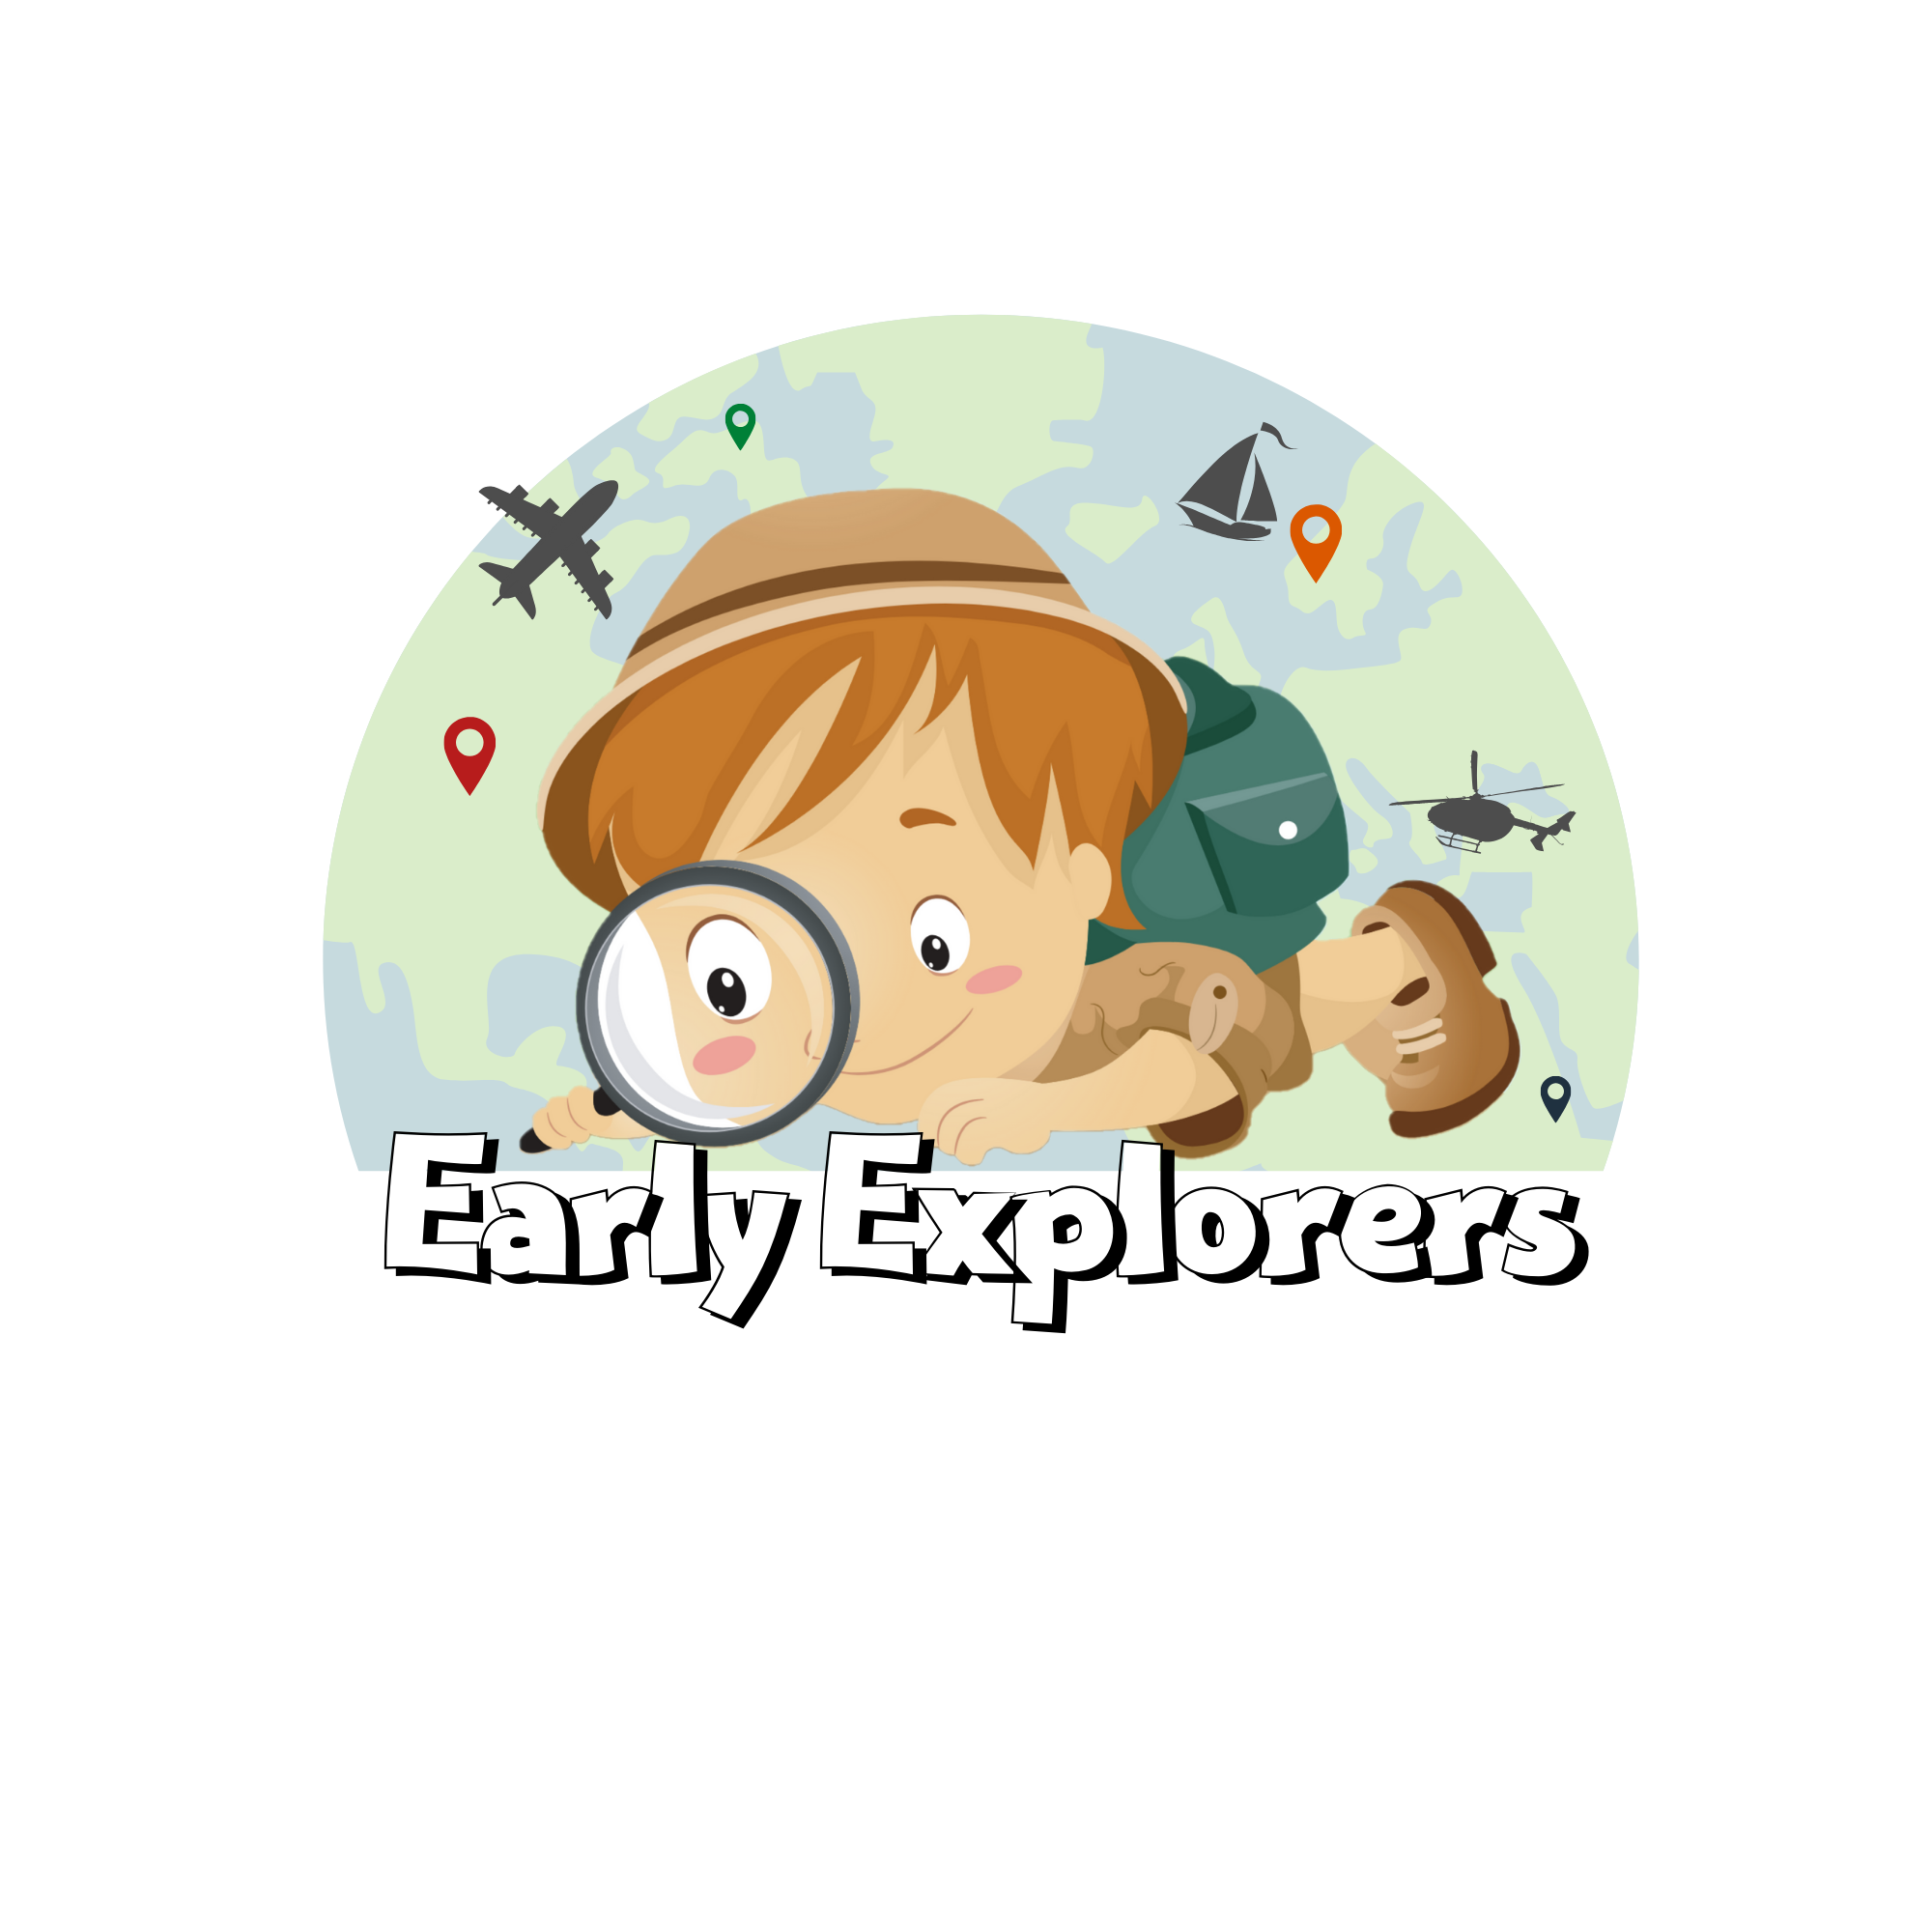 Early Explorers graphic for Pre-K Summer Camp